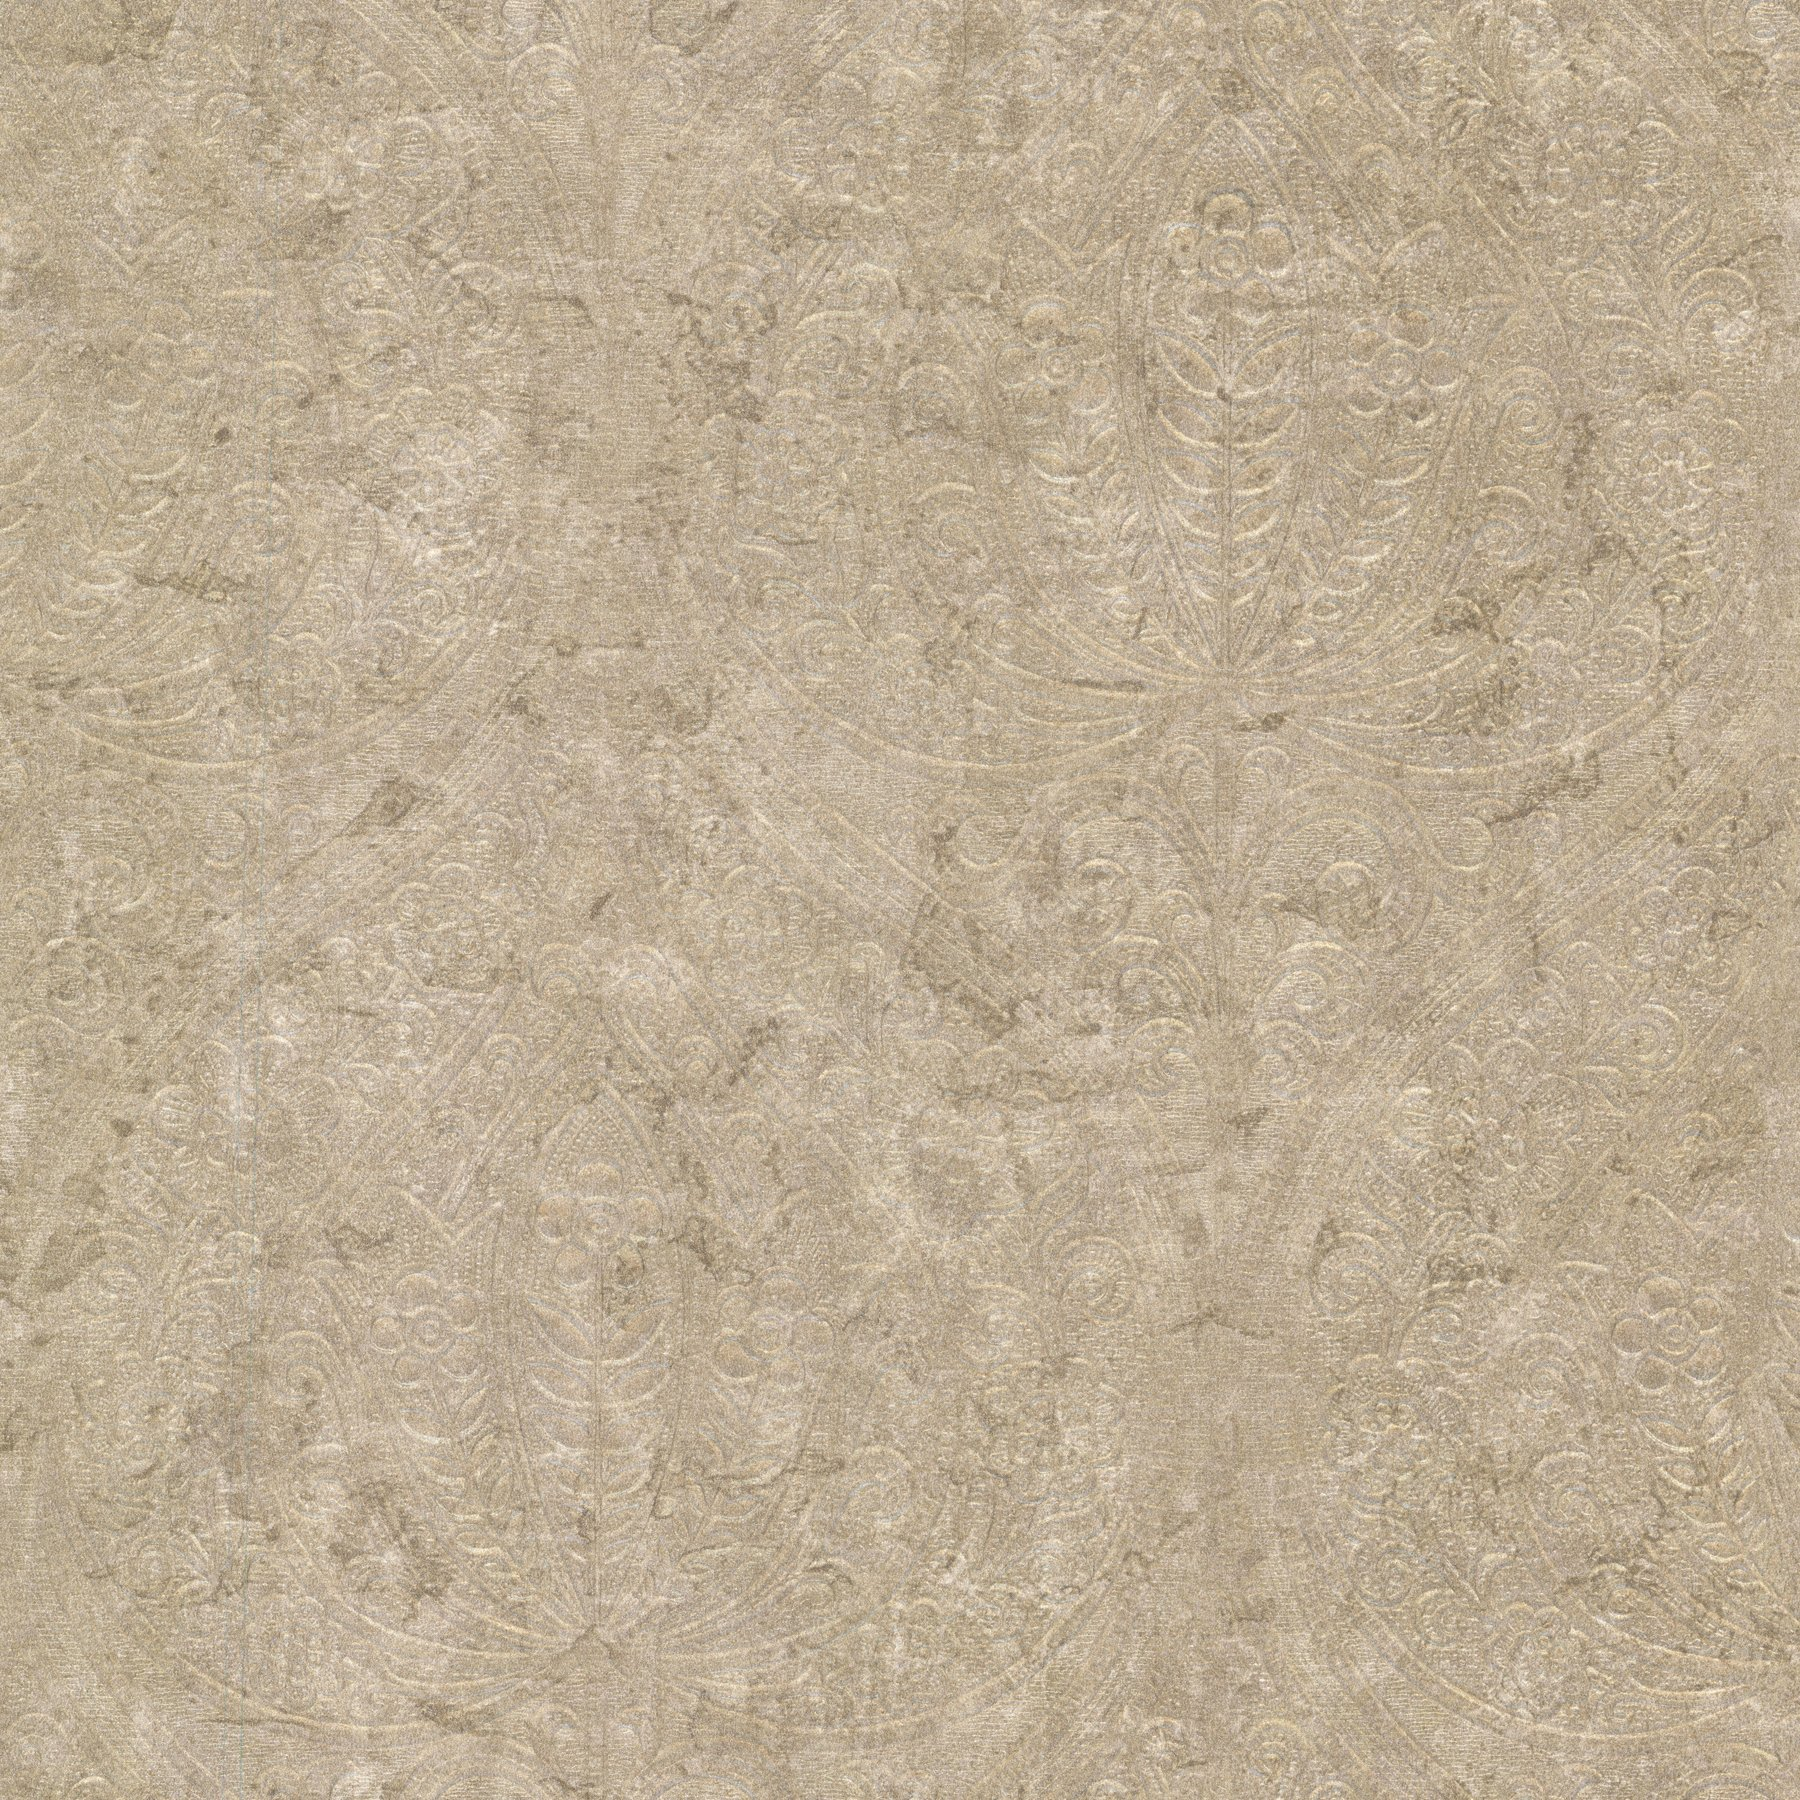 Kenneth James 672-20090 Paolina Embossed Damask Wallpaper, Large, Bronze by Kenneth James